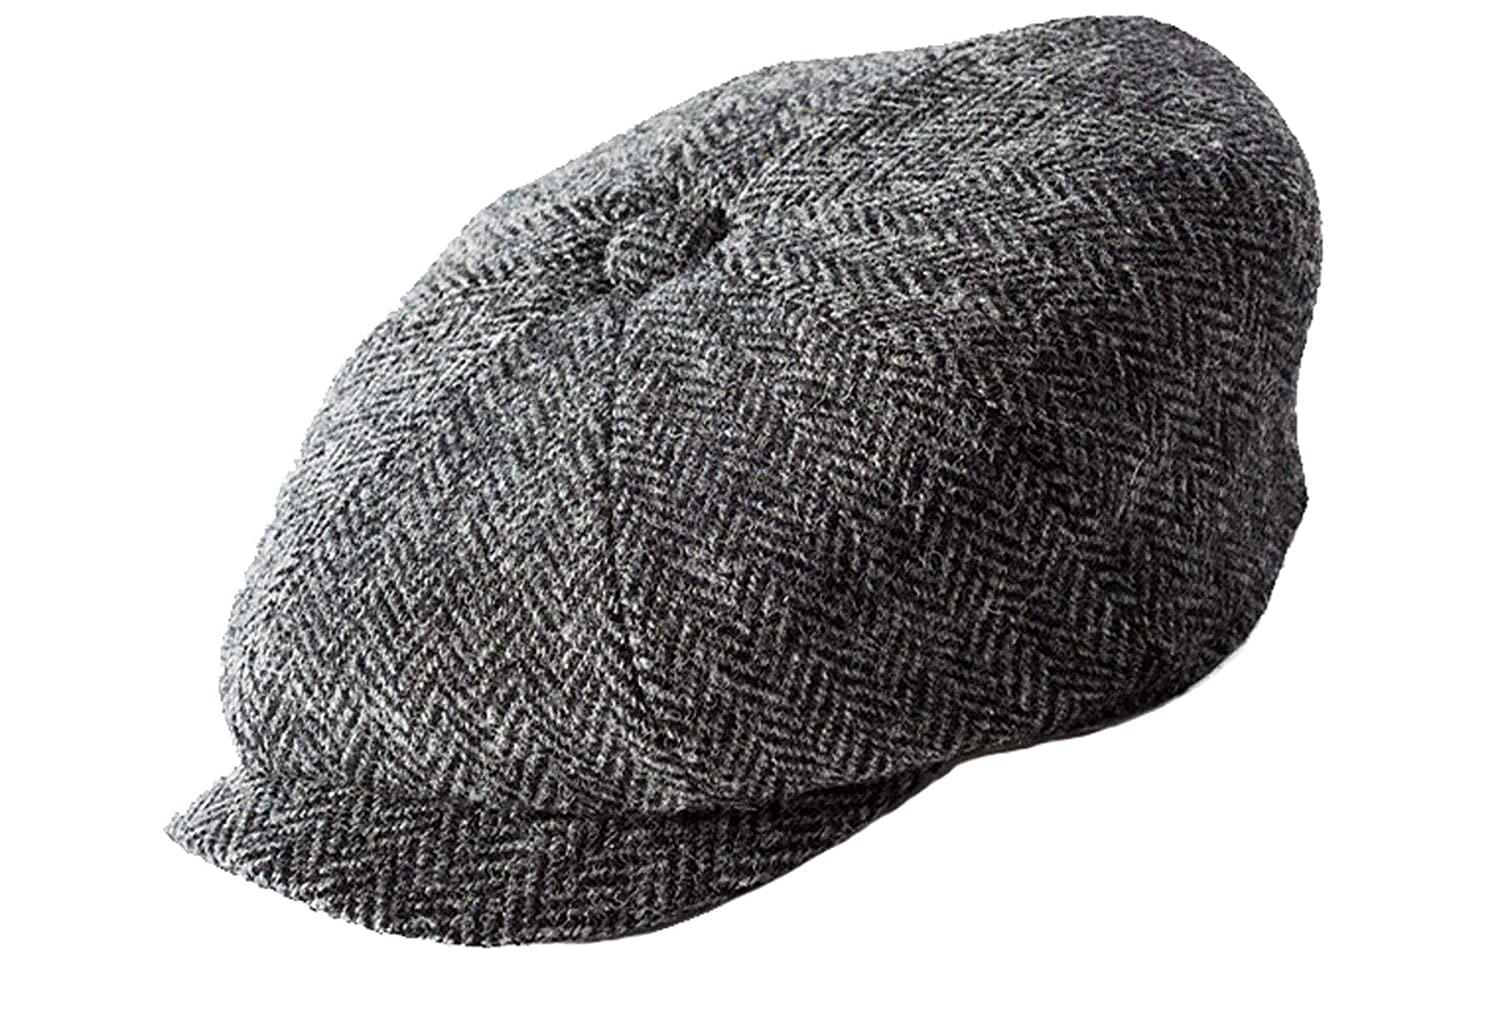 a53c41e85af3f7 Failsworth Harris Tweed Newsboy Cap at Amazon Men's Clothing store: